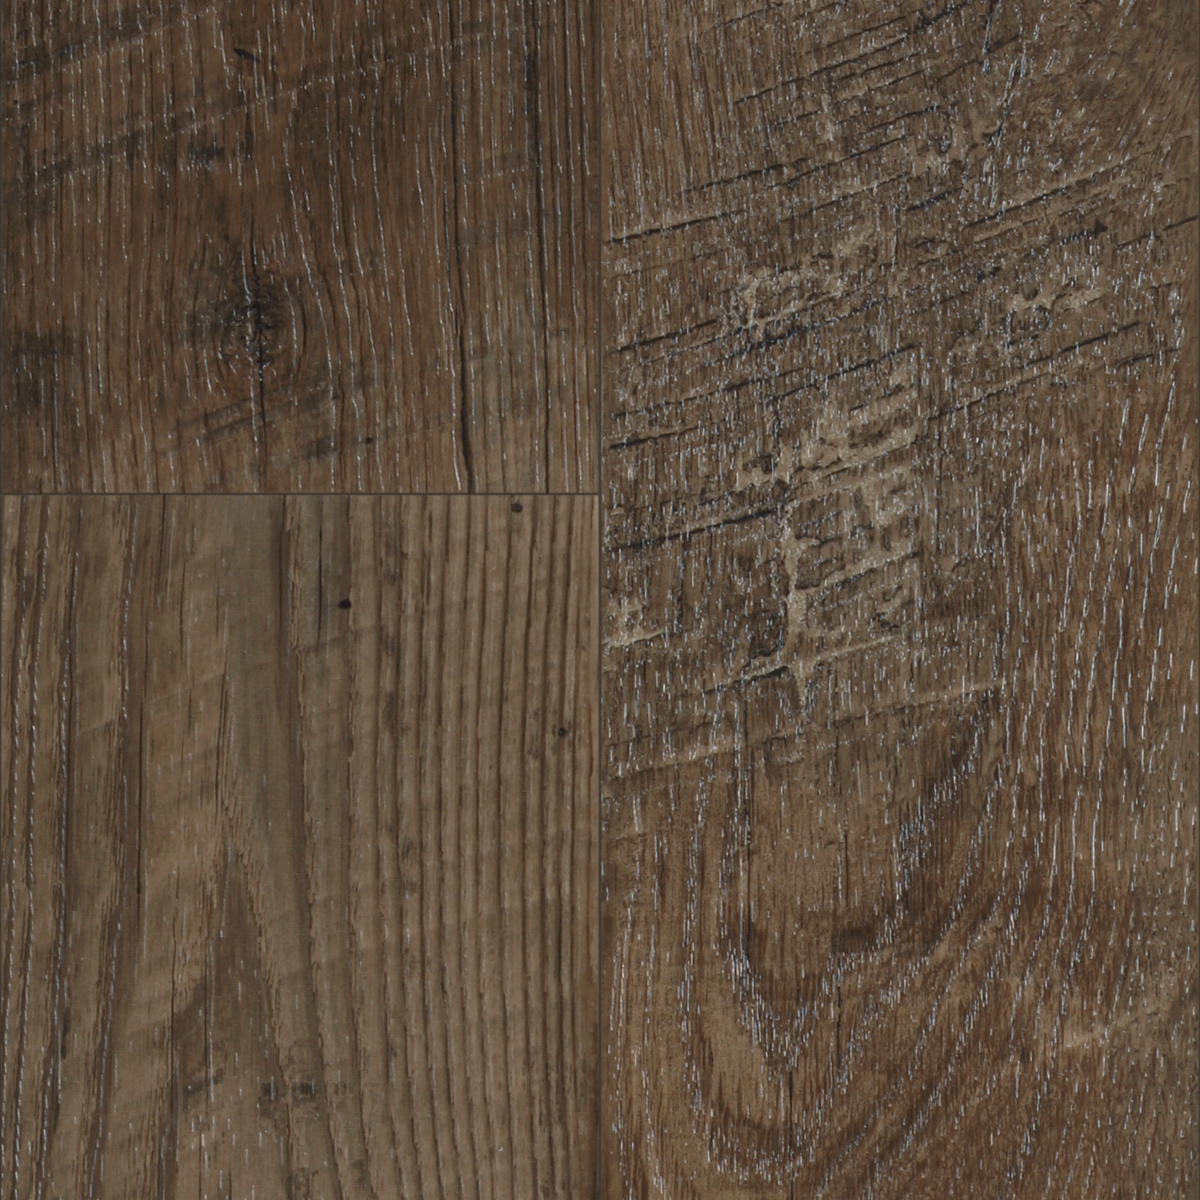 Adura max luxury vinyl flooring boardwalk max033 6 x 48 for Mannington vinyl flooring